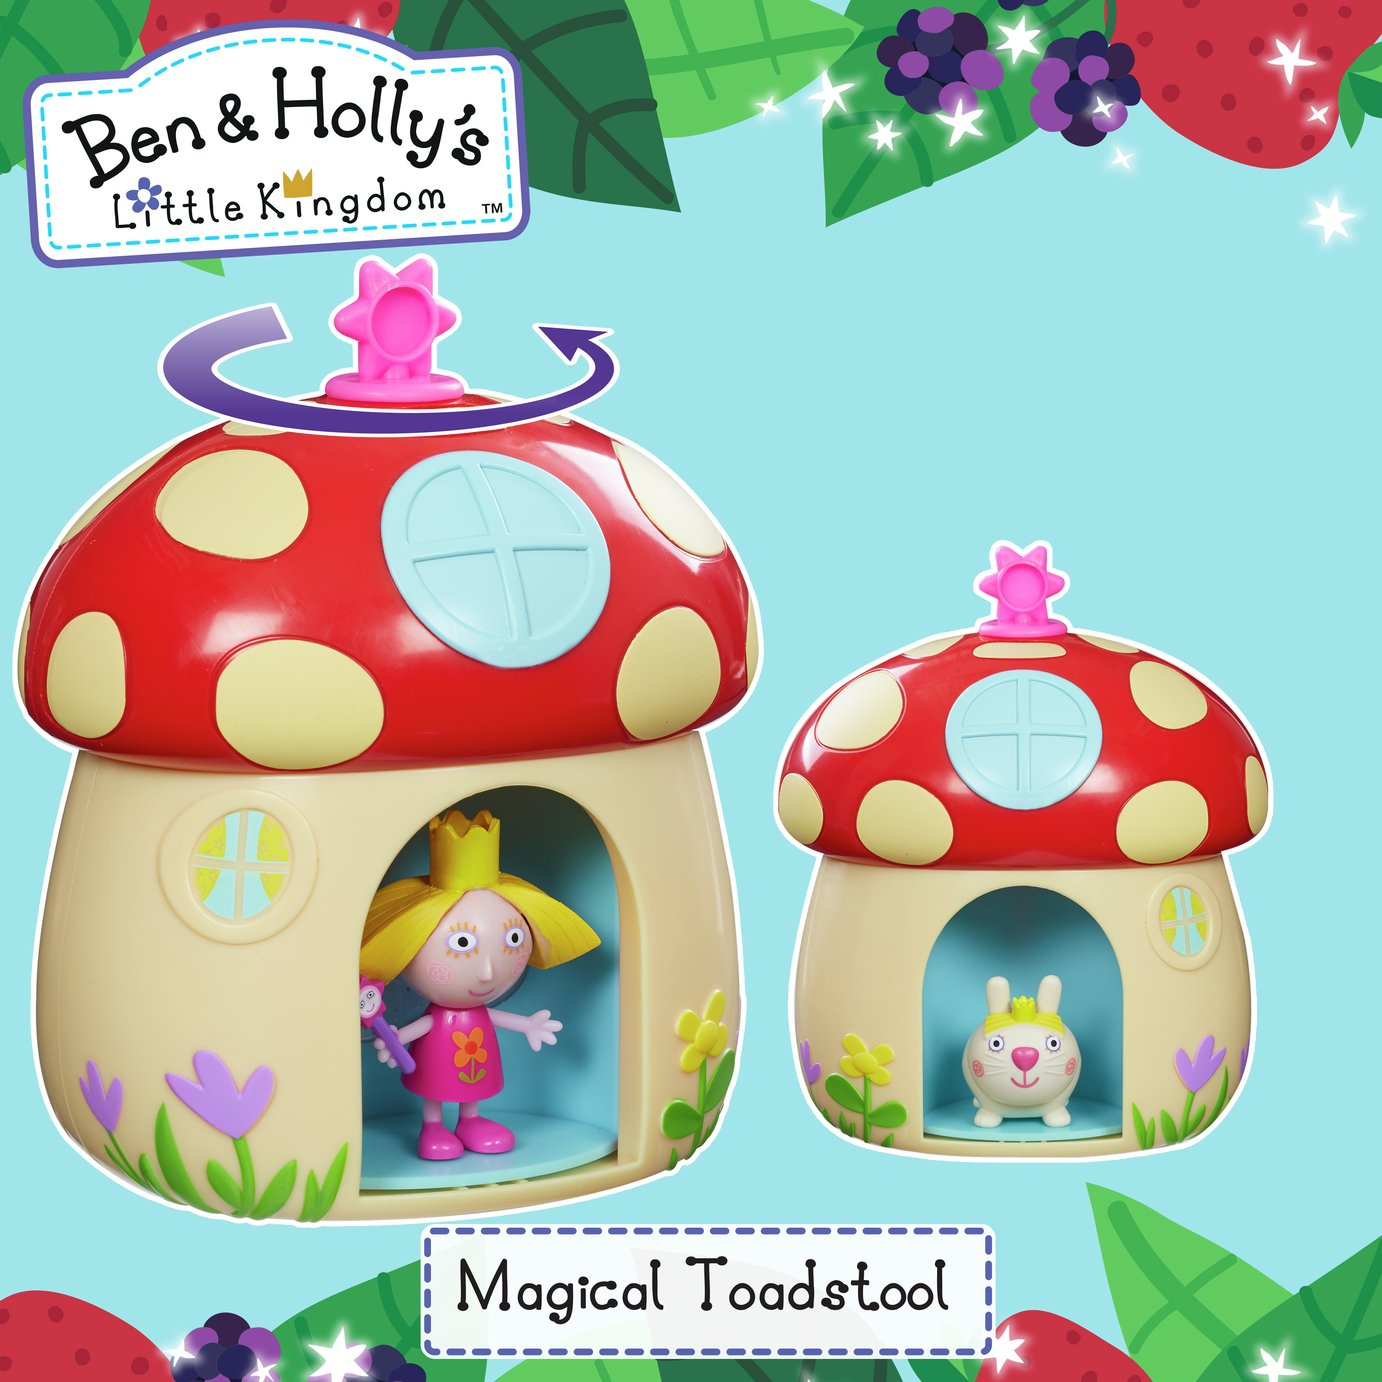 Image of Ben & Holly's Little Kingdom Magical Toadstool Playset